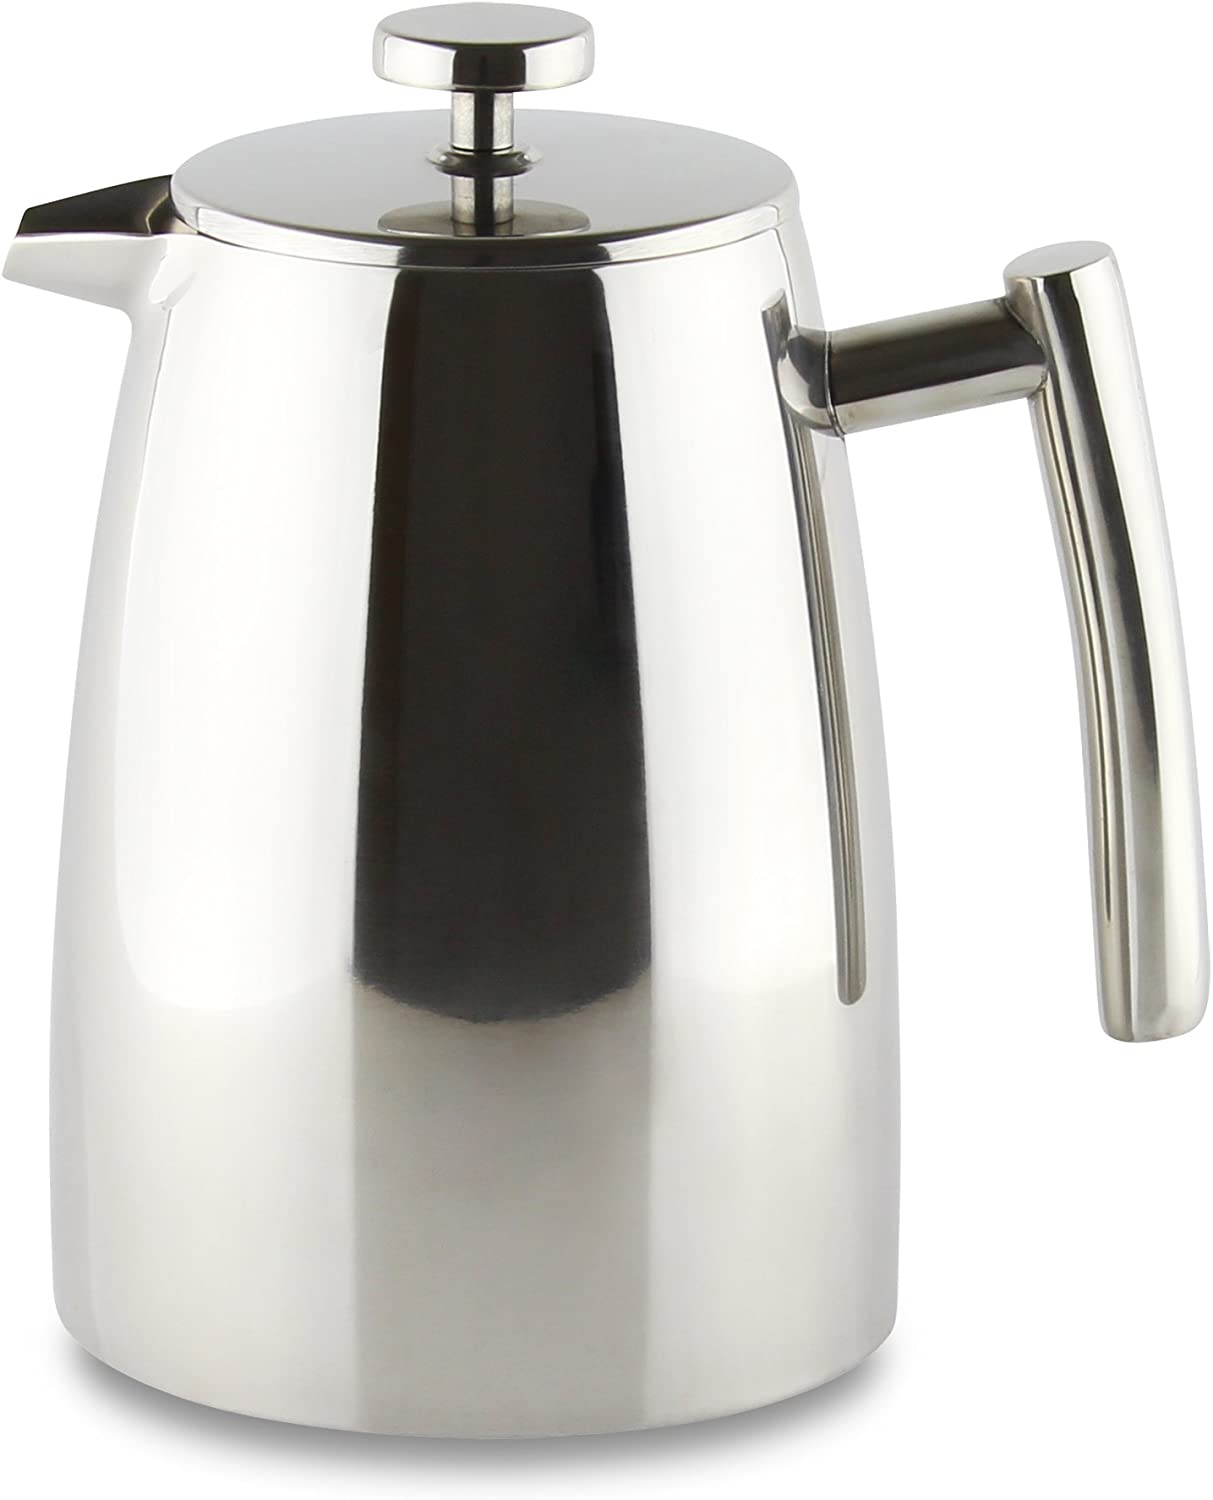 Grunwerg Cafe Ole Double Wall Insulated 3 Cup 13oz Stainless Steel French Coffee Press